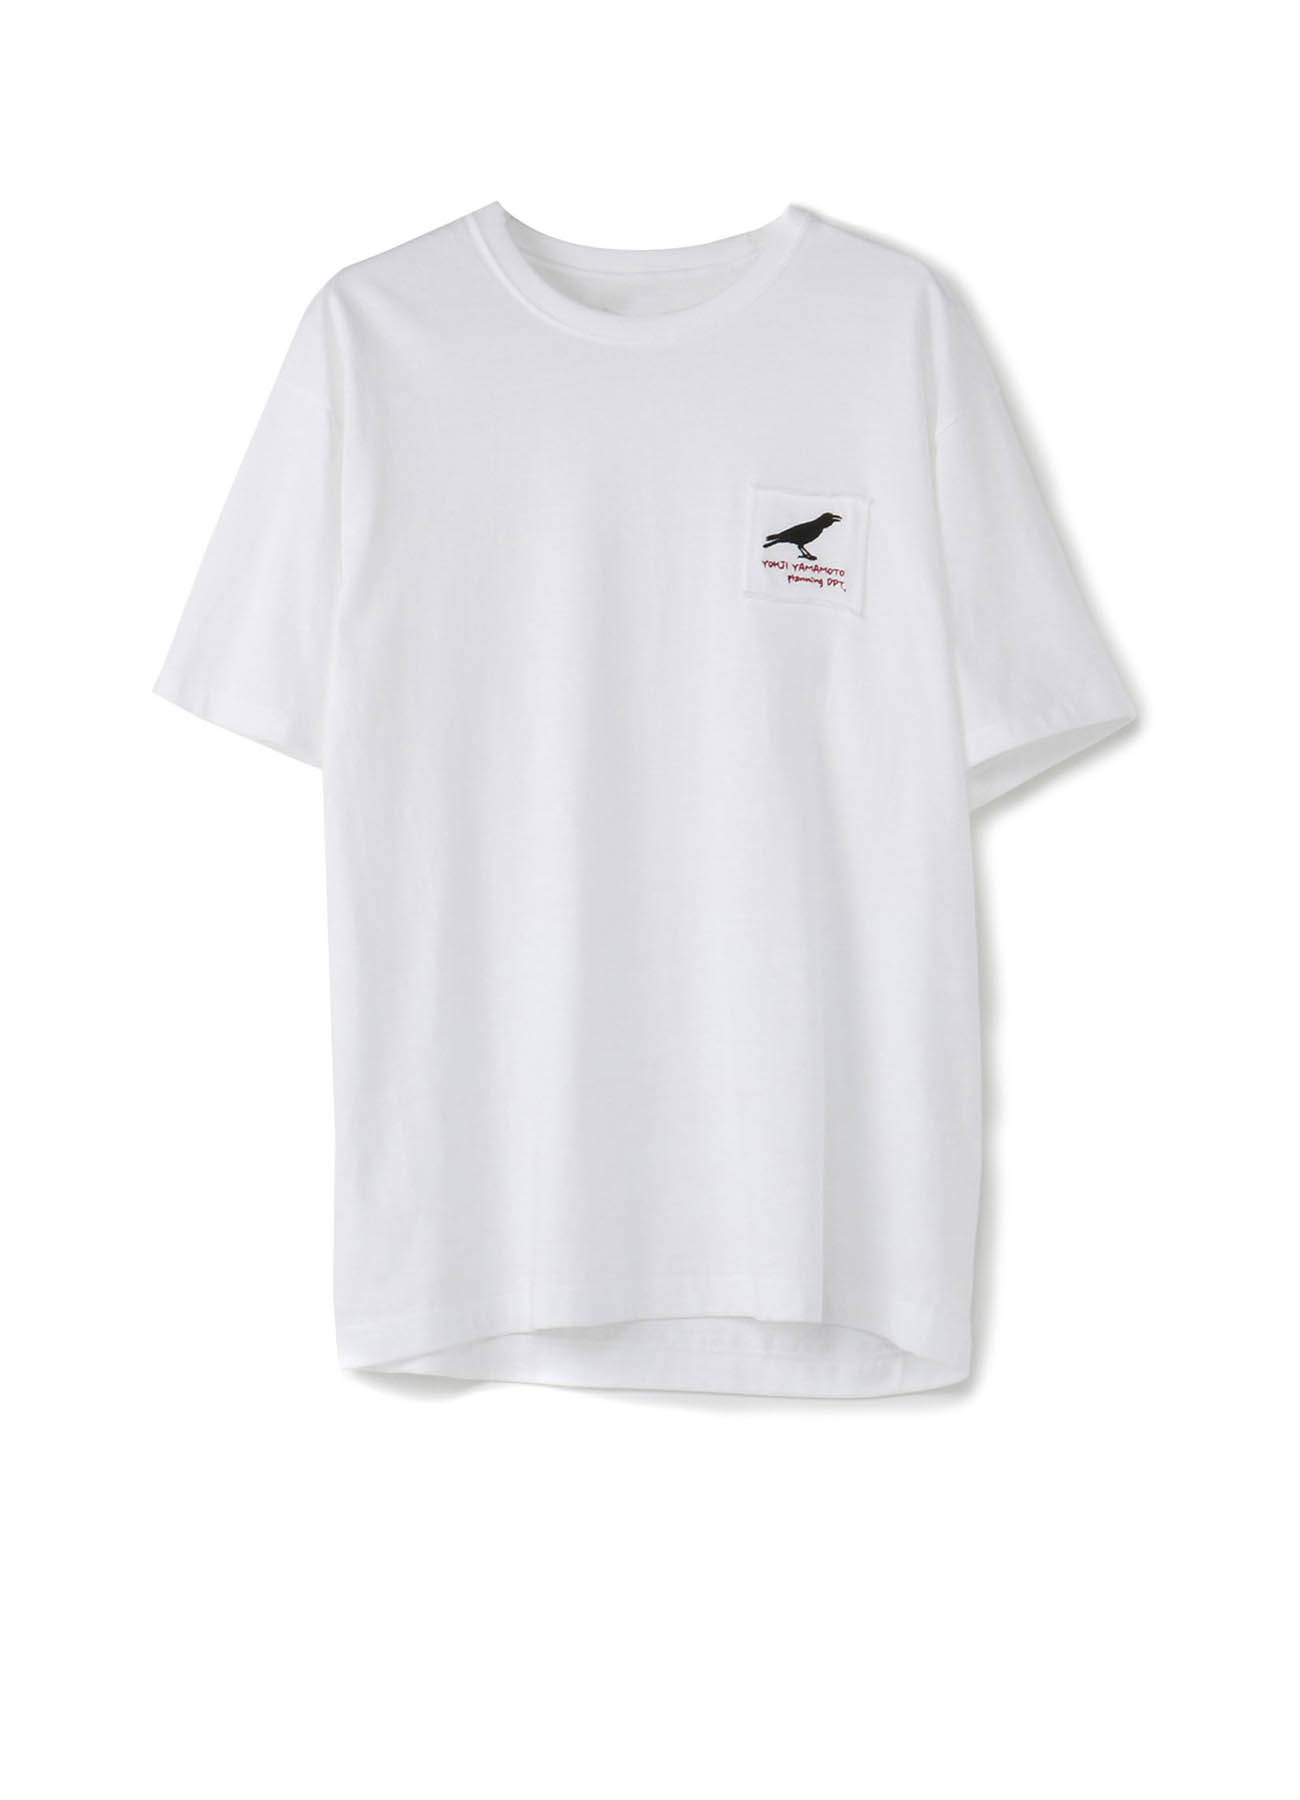 Black crow embroidered T-shirt